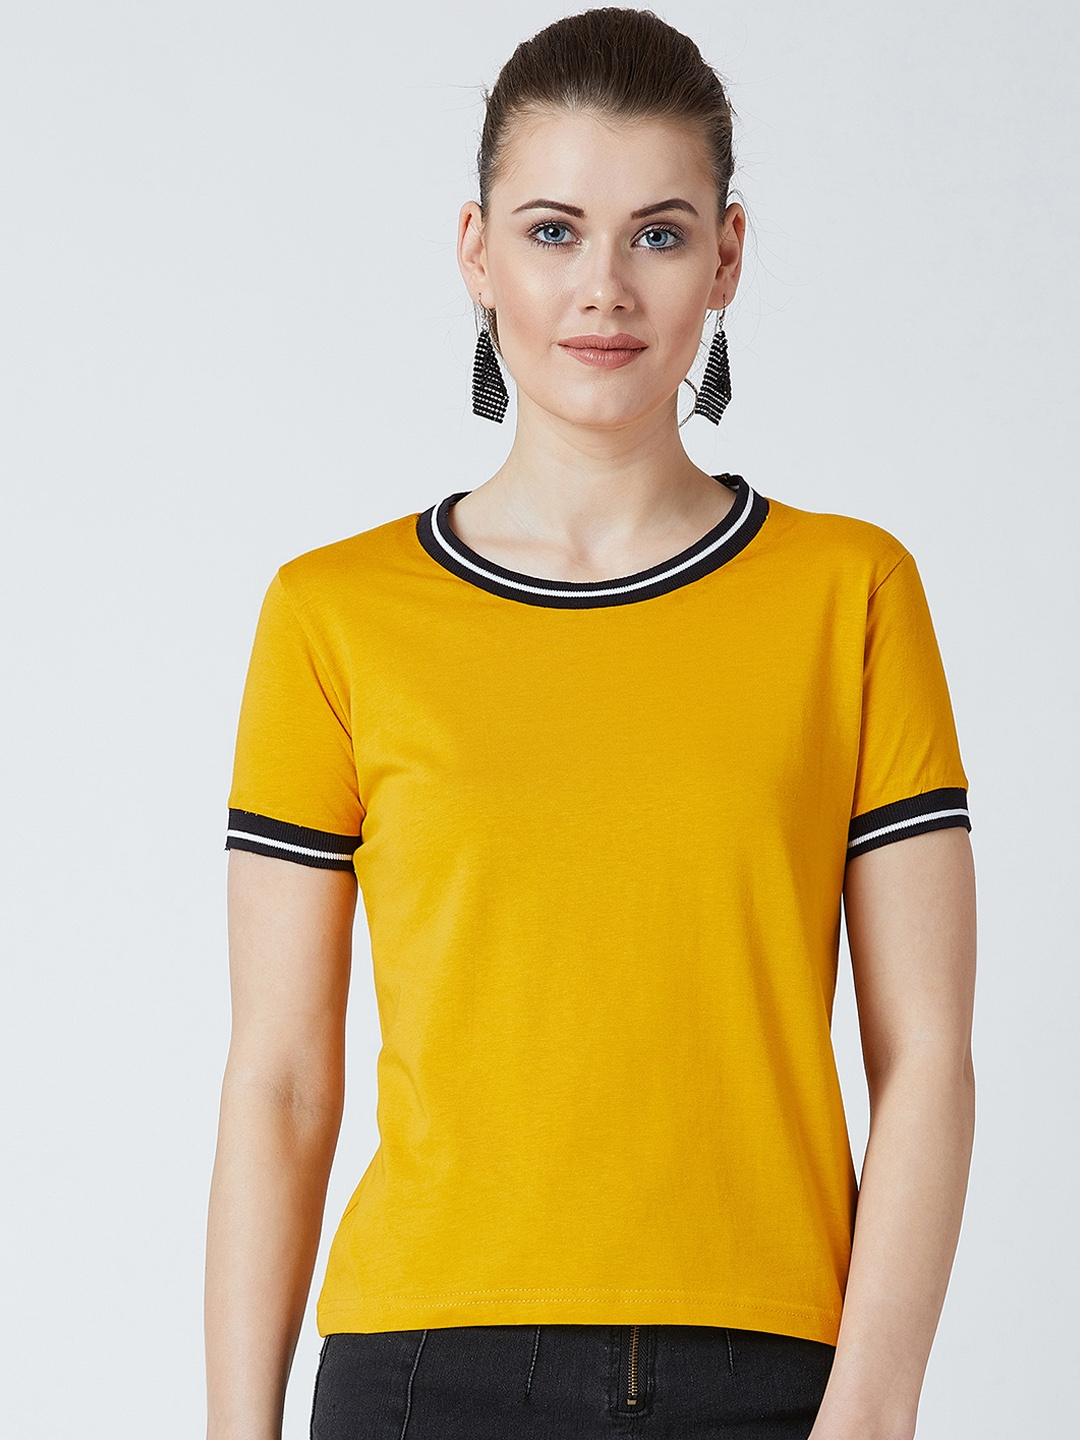 The Dry State Women Yellow Solid Round Neck T shirt